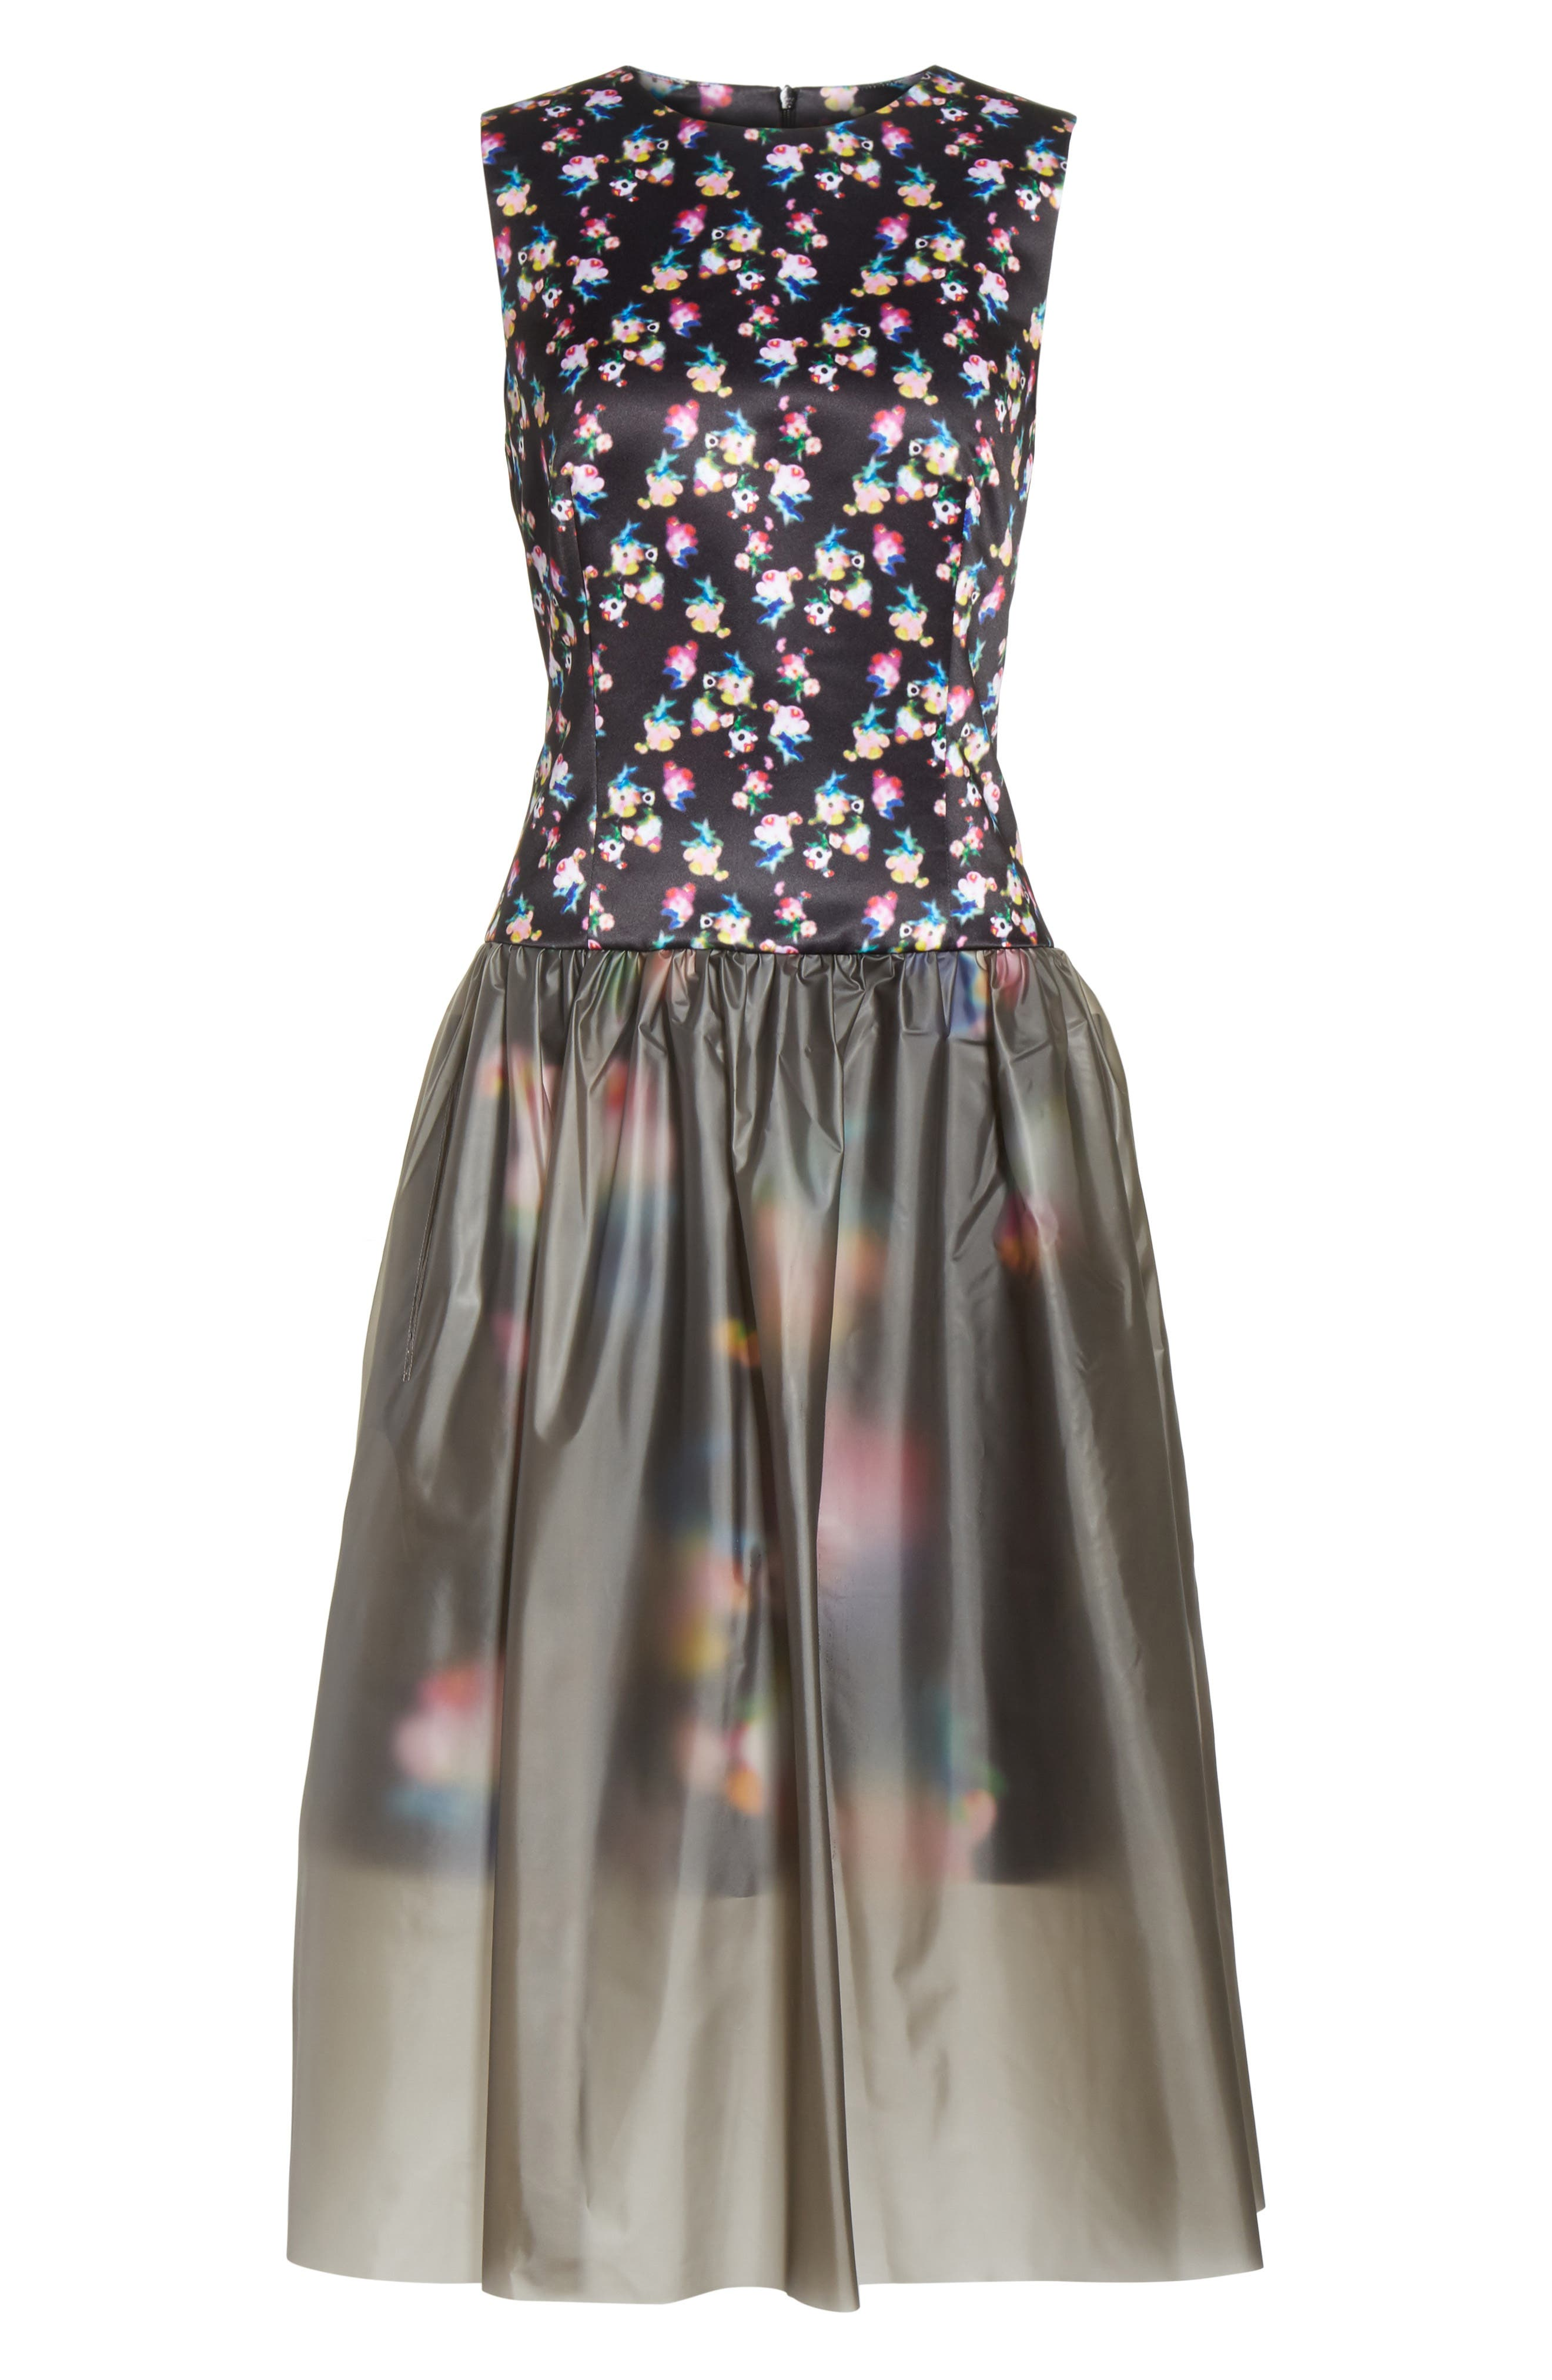 Floral Print Fit & Flare Dress with Vinyl Skirt,                             Alternate thumbnail 6, color,                             001